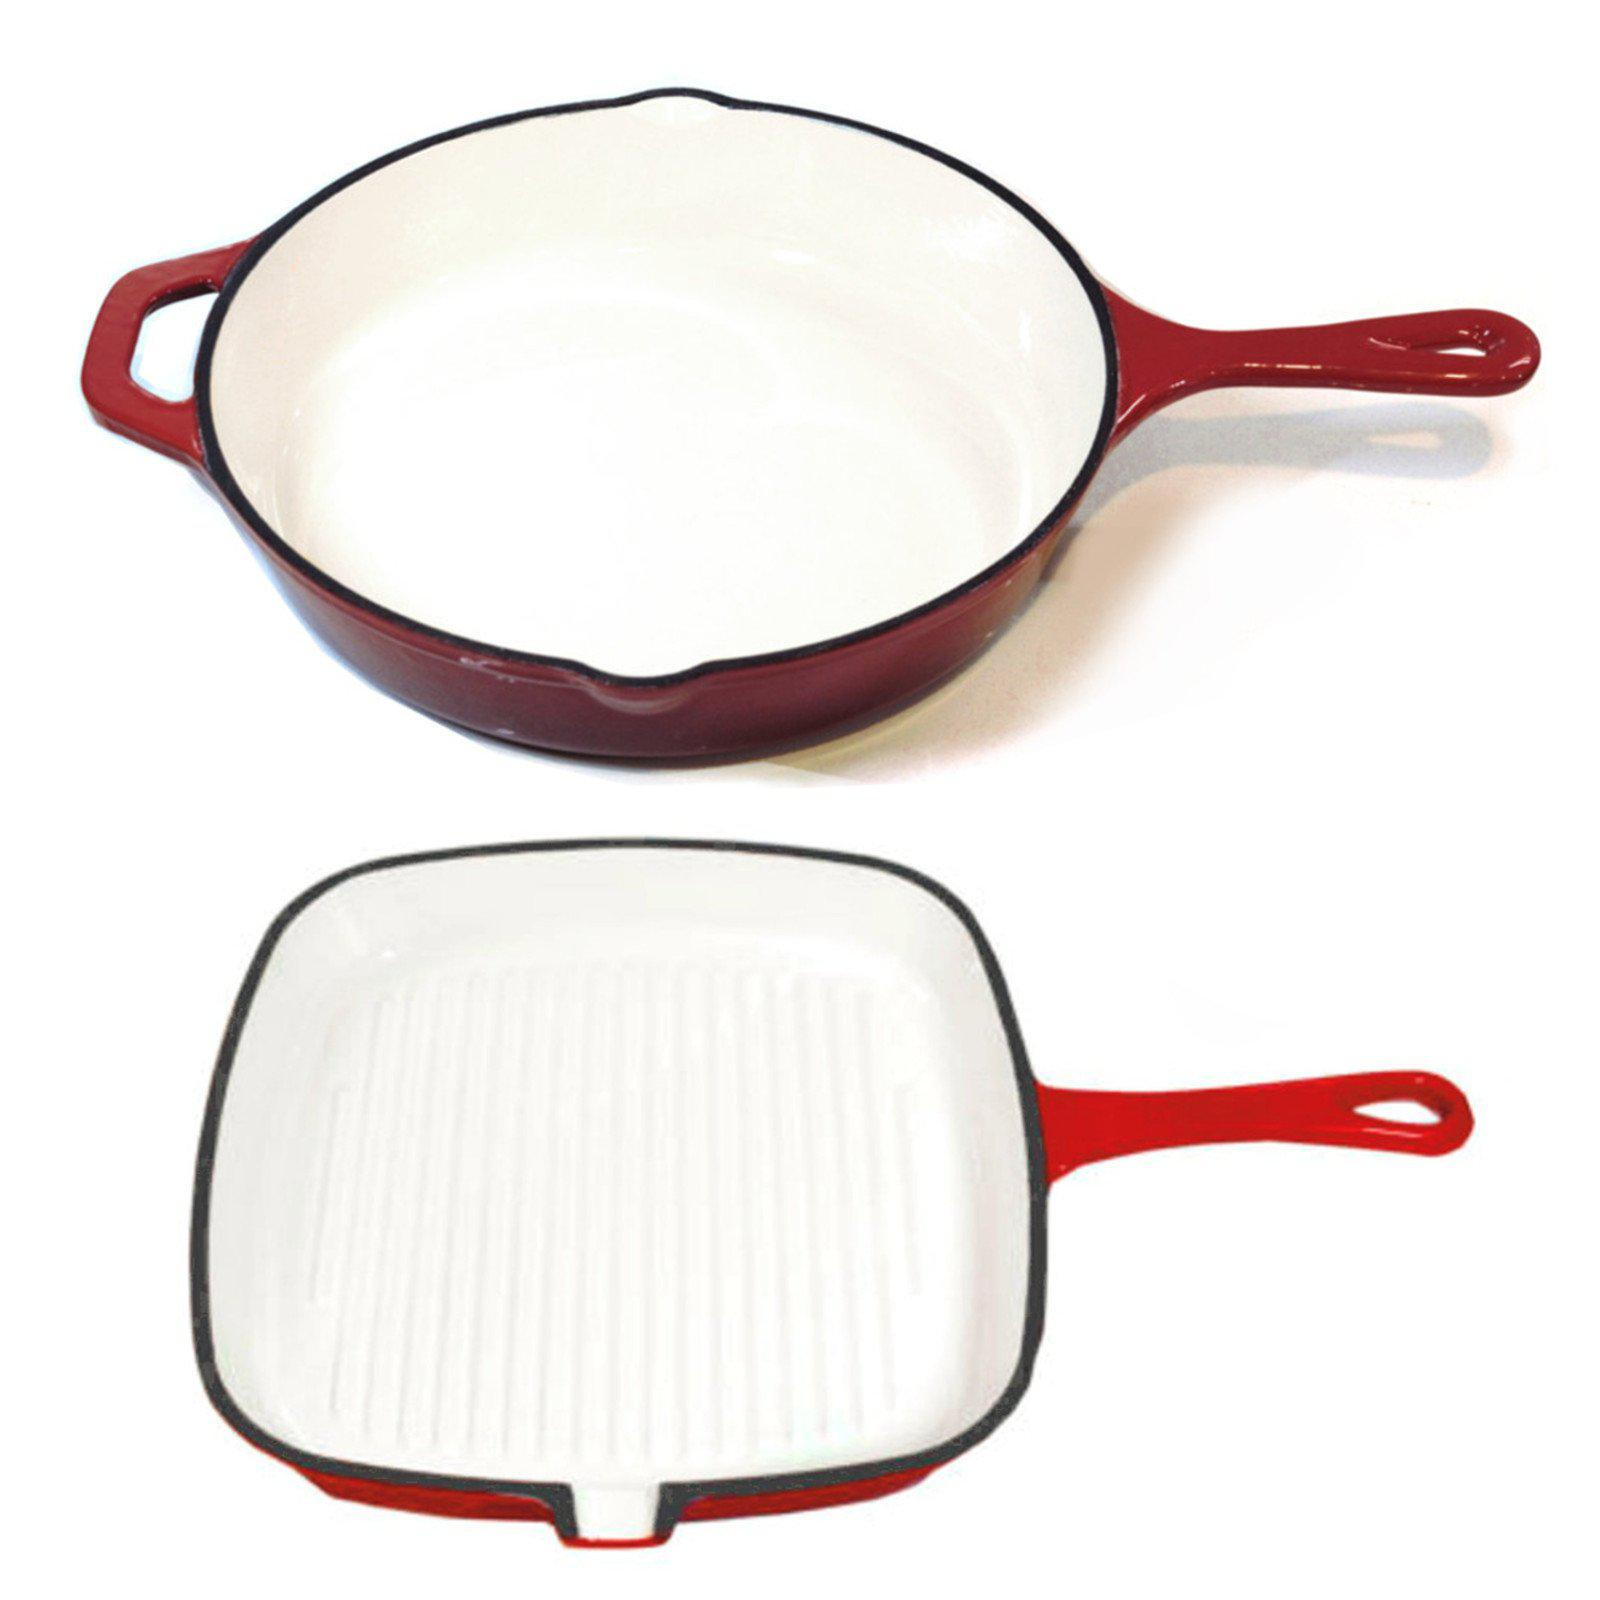 Chef's Quality Cast Iron Enamel Skillet Bundle-Cast Iron Enamel-Chef's Quality Cookware